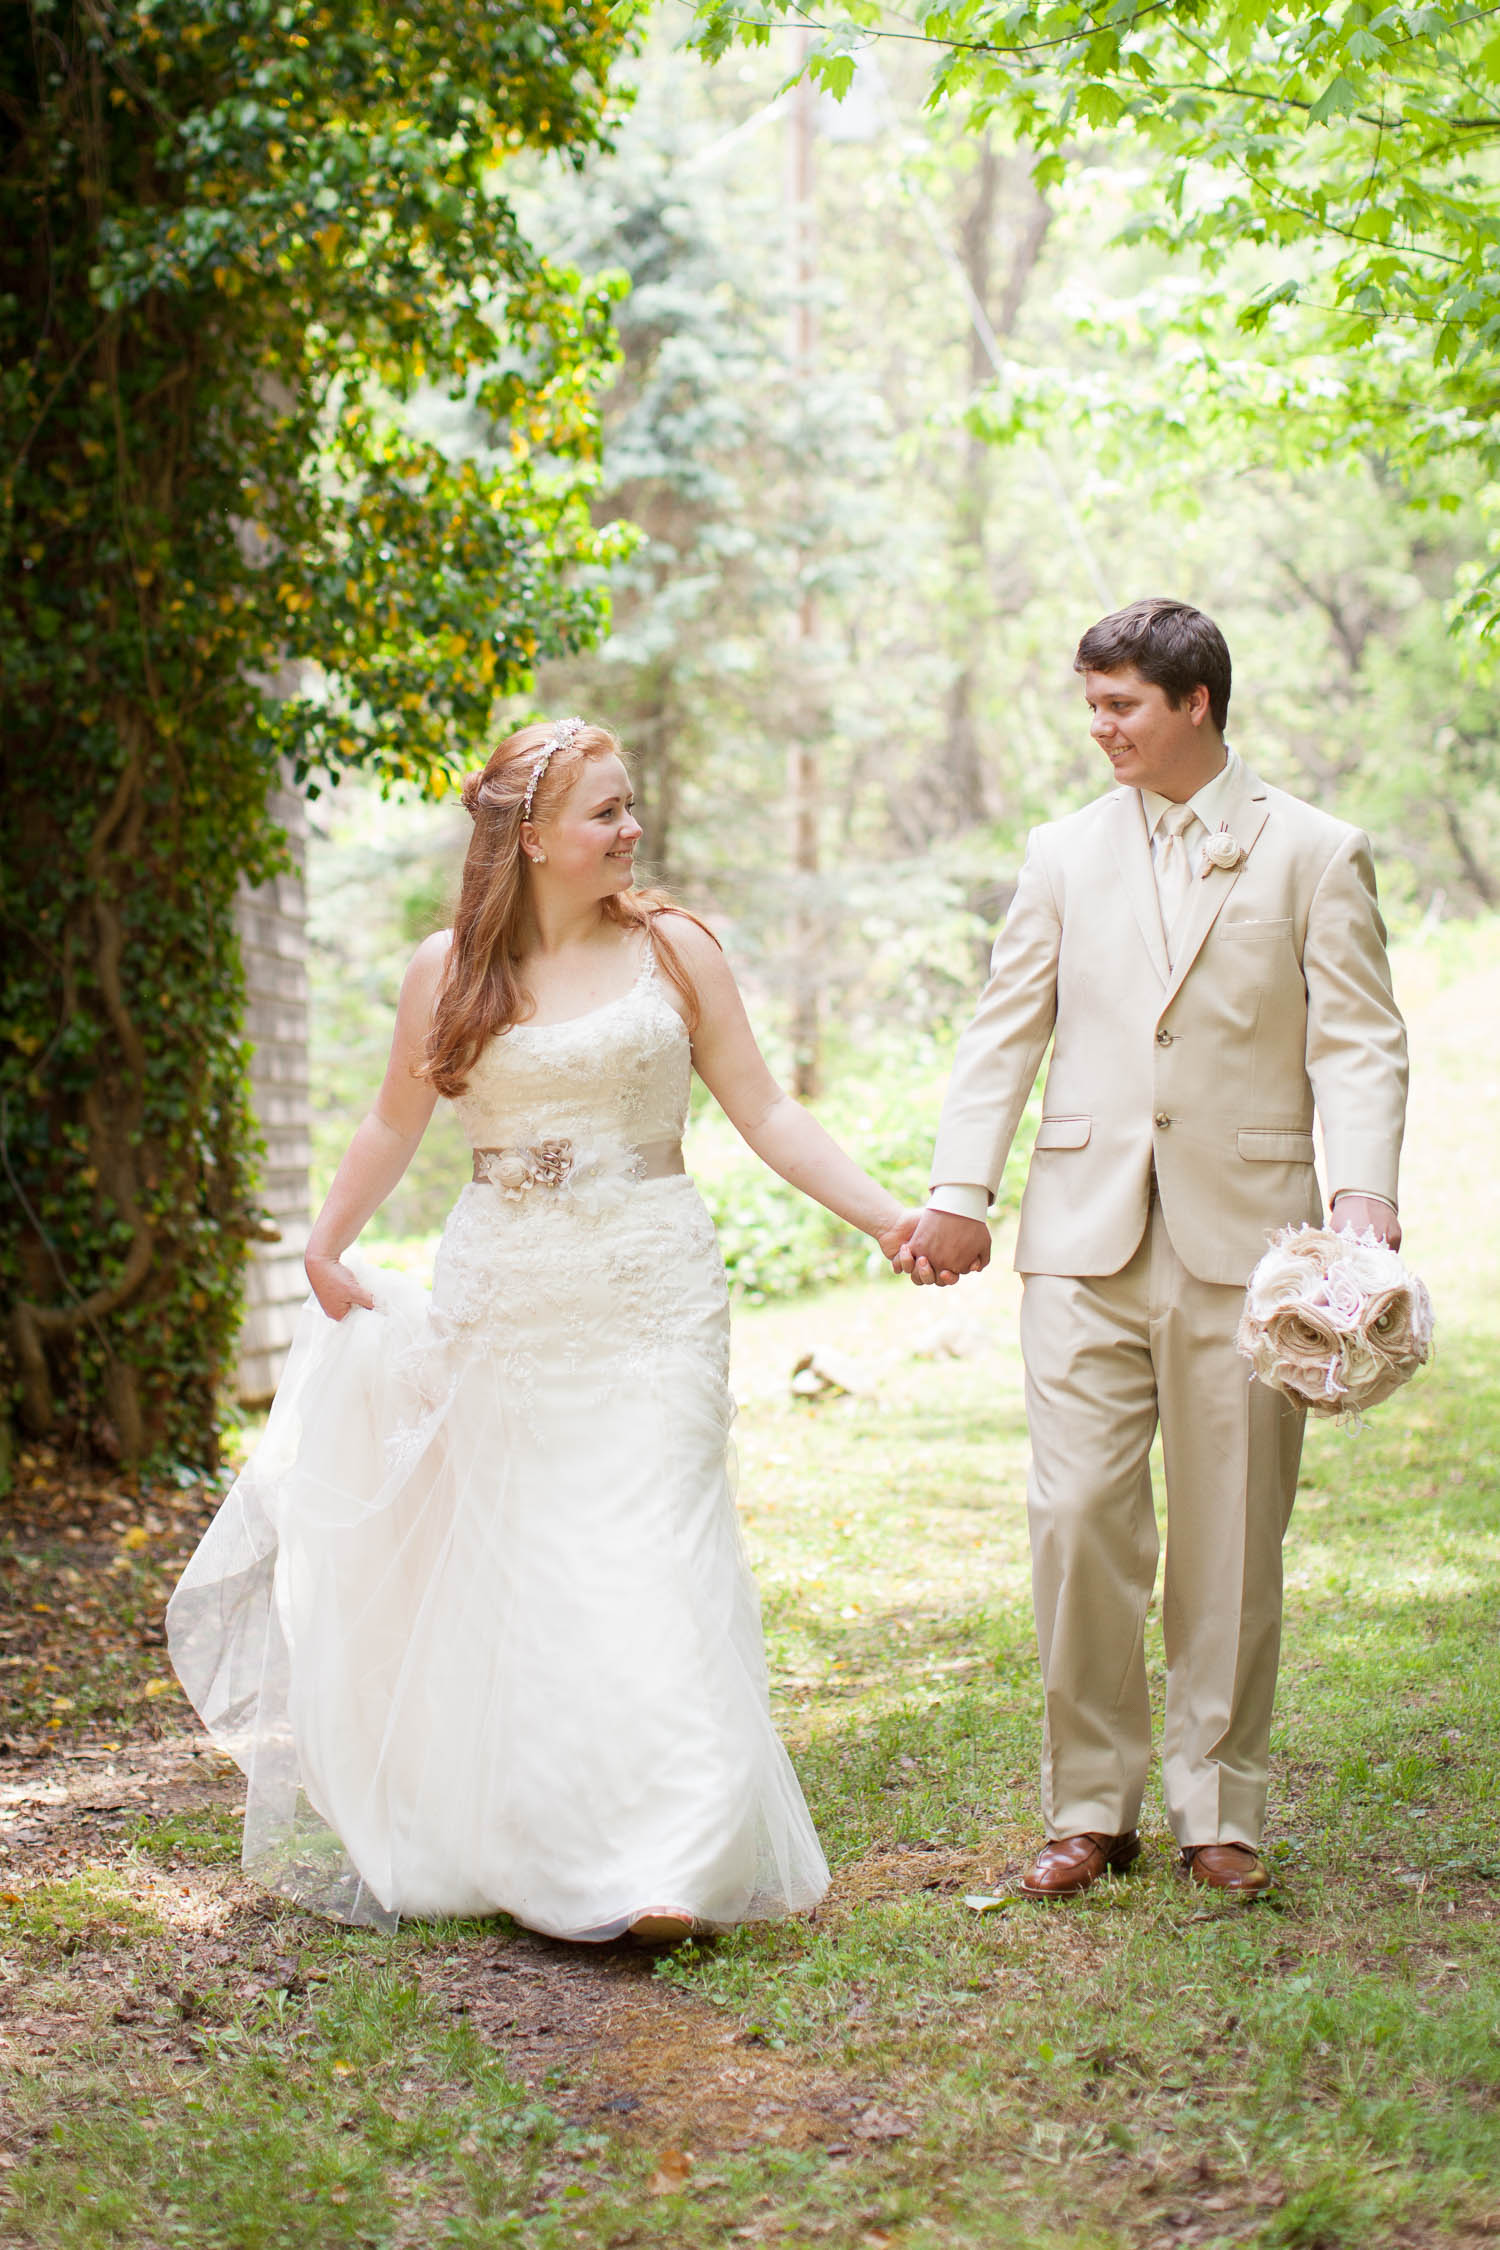 Kelsey and David got married at the historic Church of the Little Flower in the mountains of WNC. This image was taken just after the ceremony as they walked hand in hand through a grassy area just outside the chapel. I just love the dreamy atmosphere that the back lit sun along with the bright pastel colors of Spring provide.